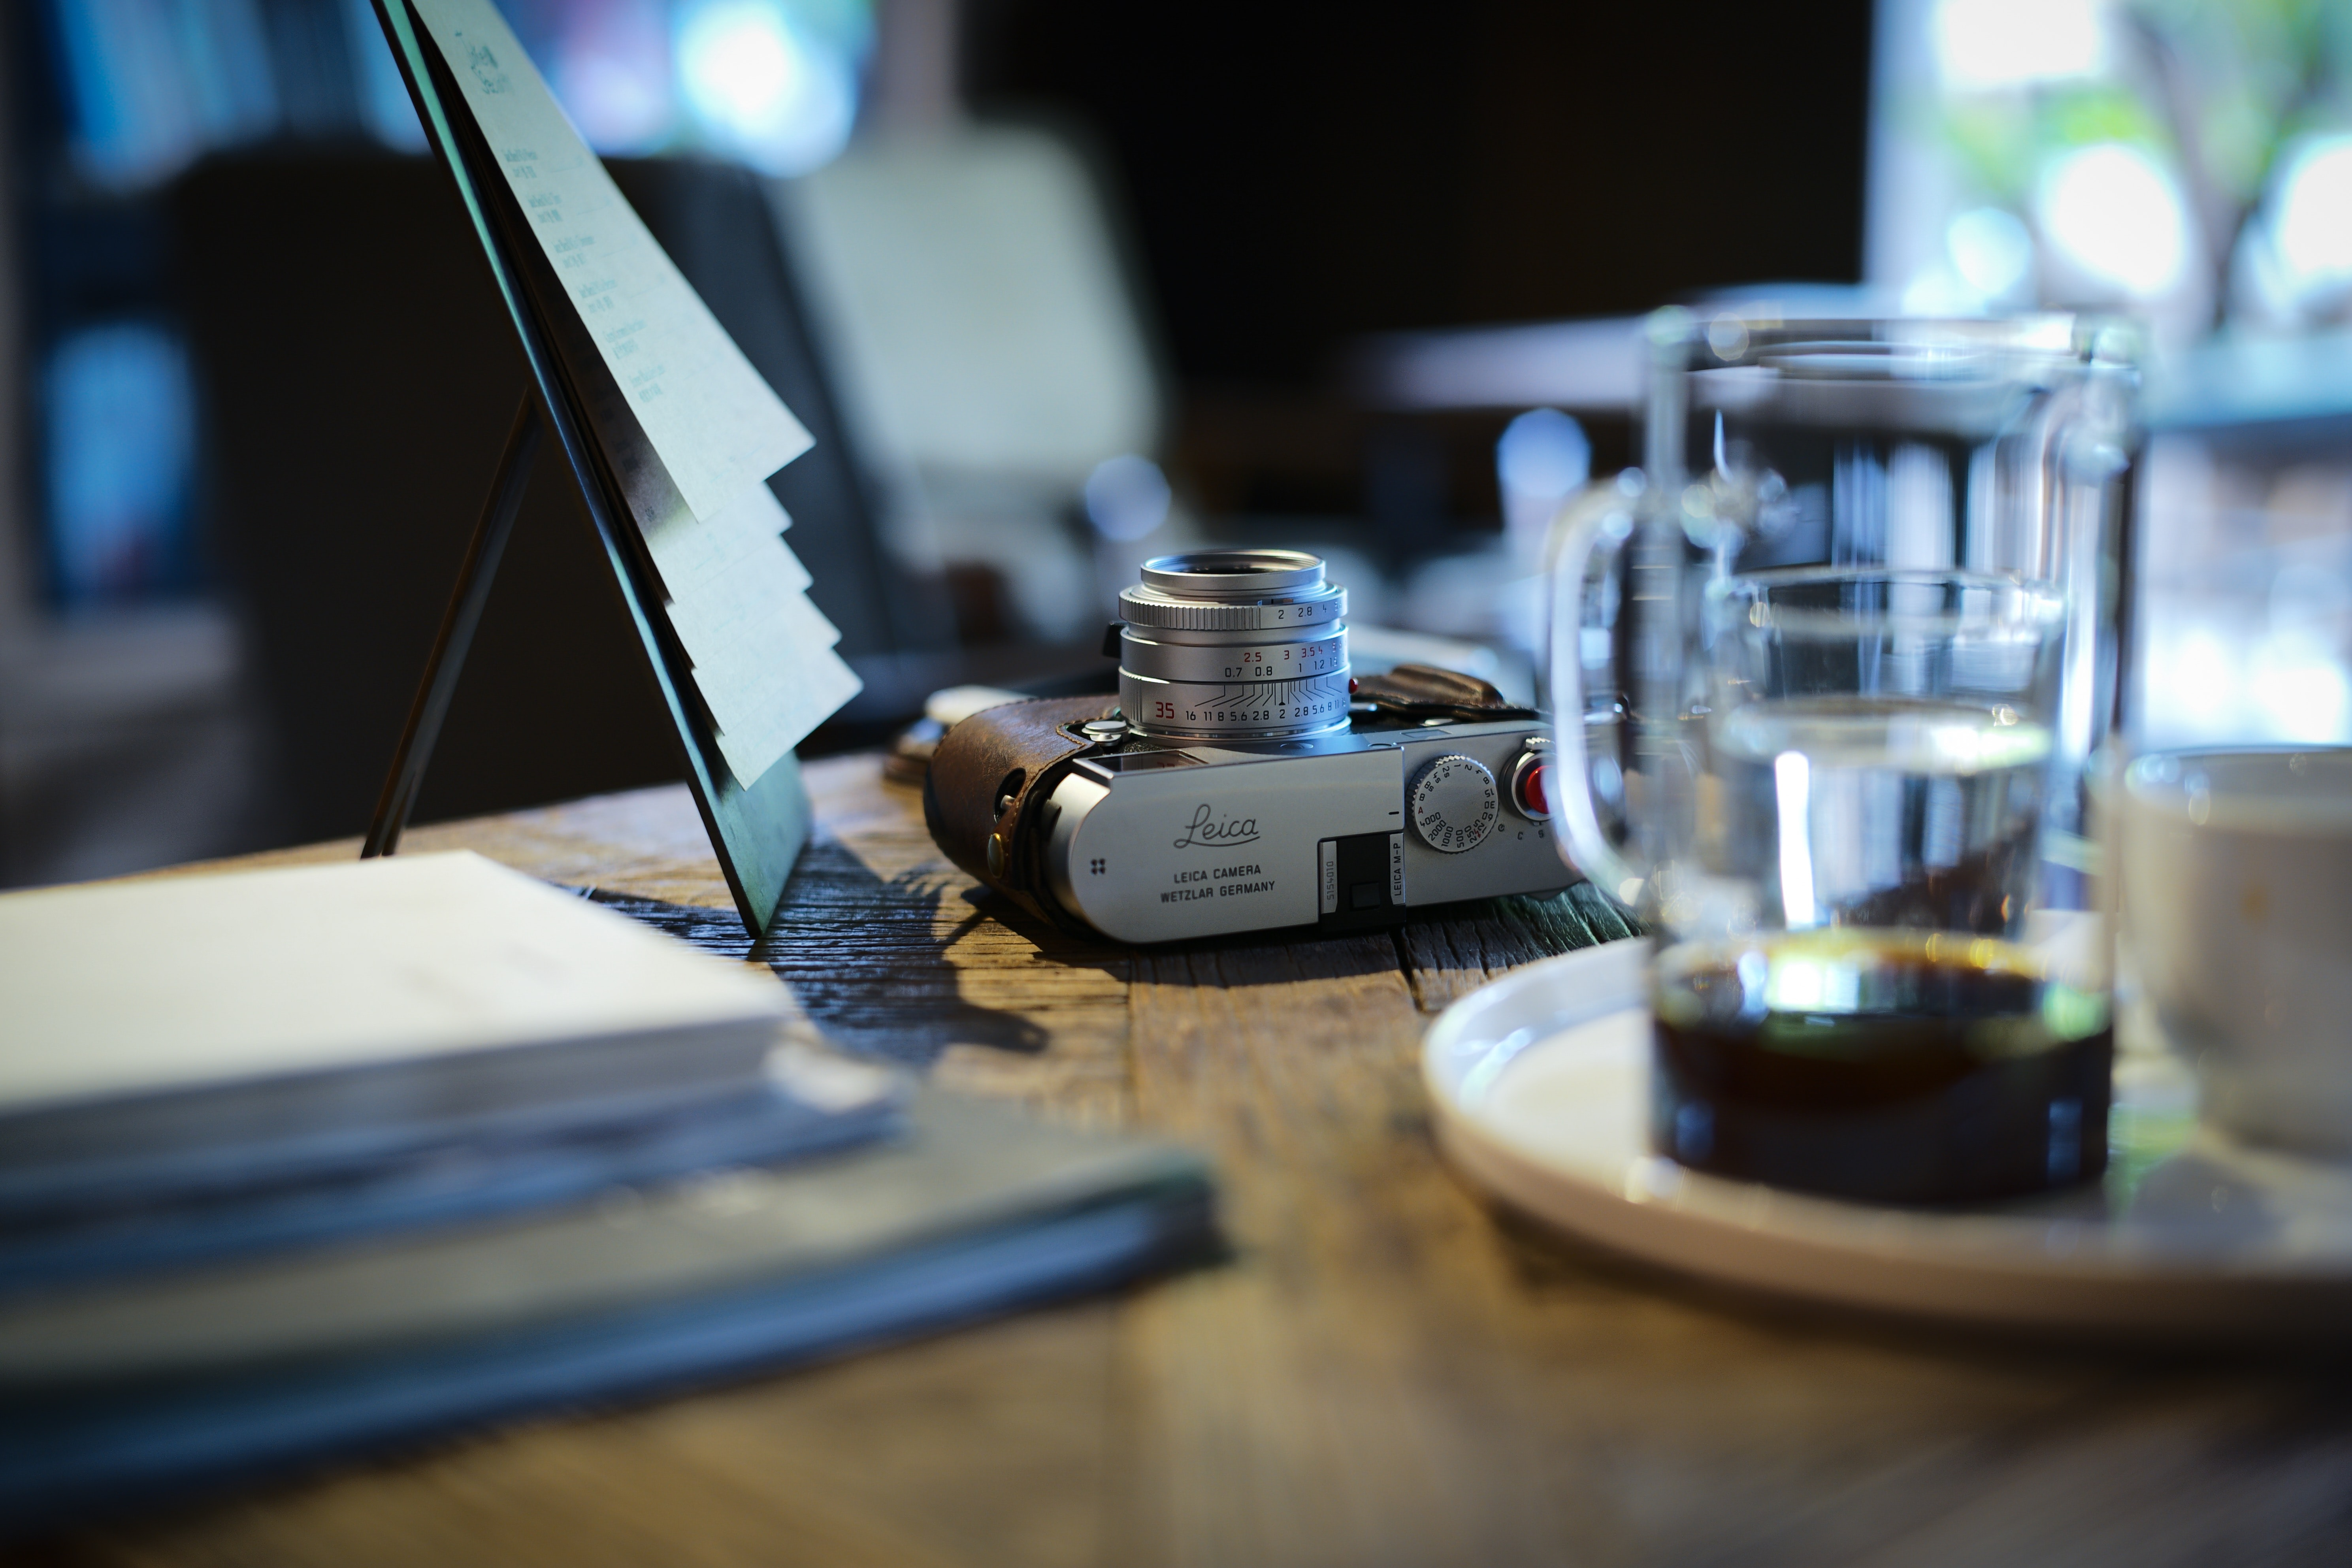 gray camera beside clear glass mug on top of table